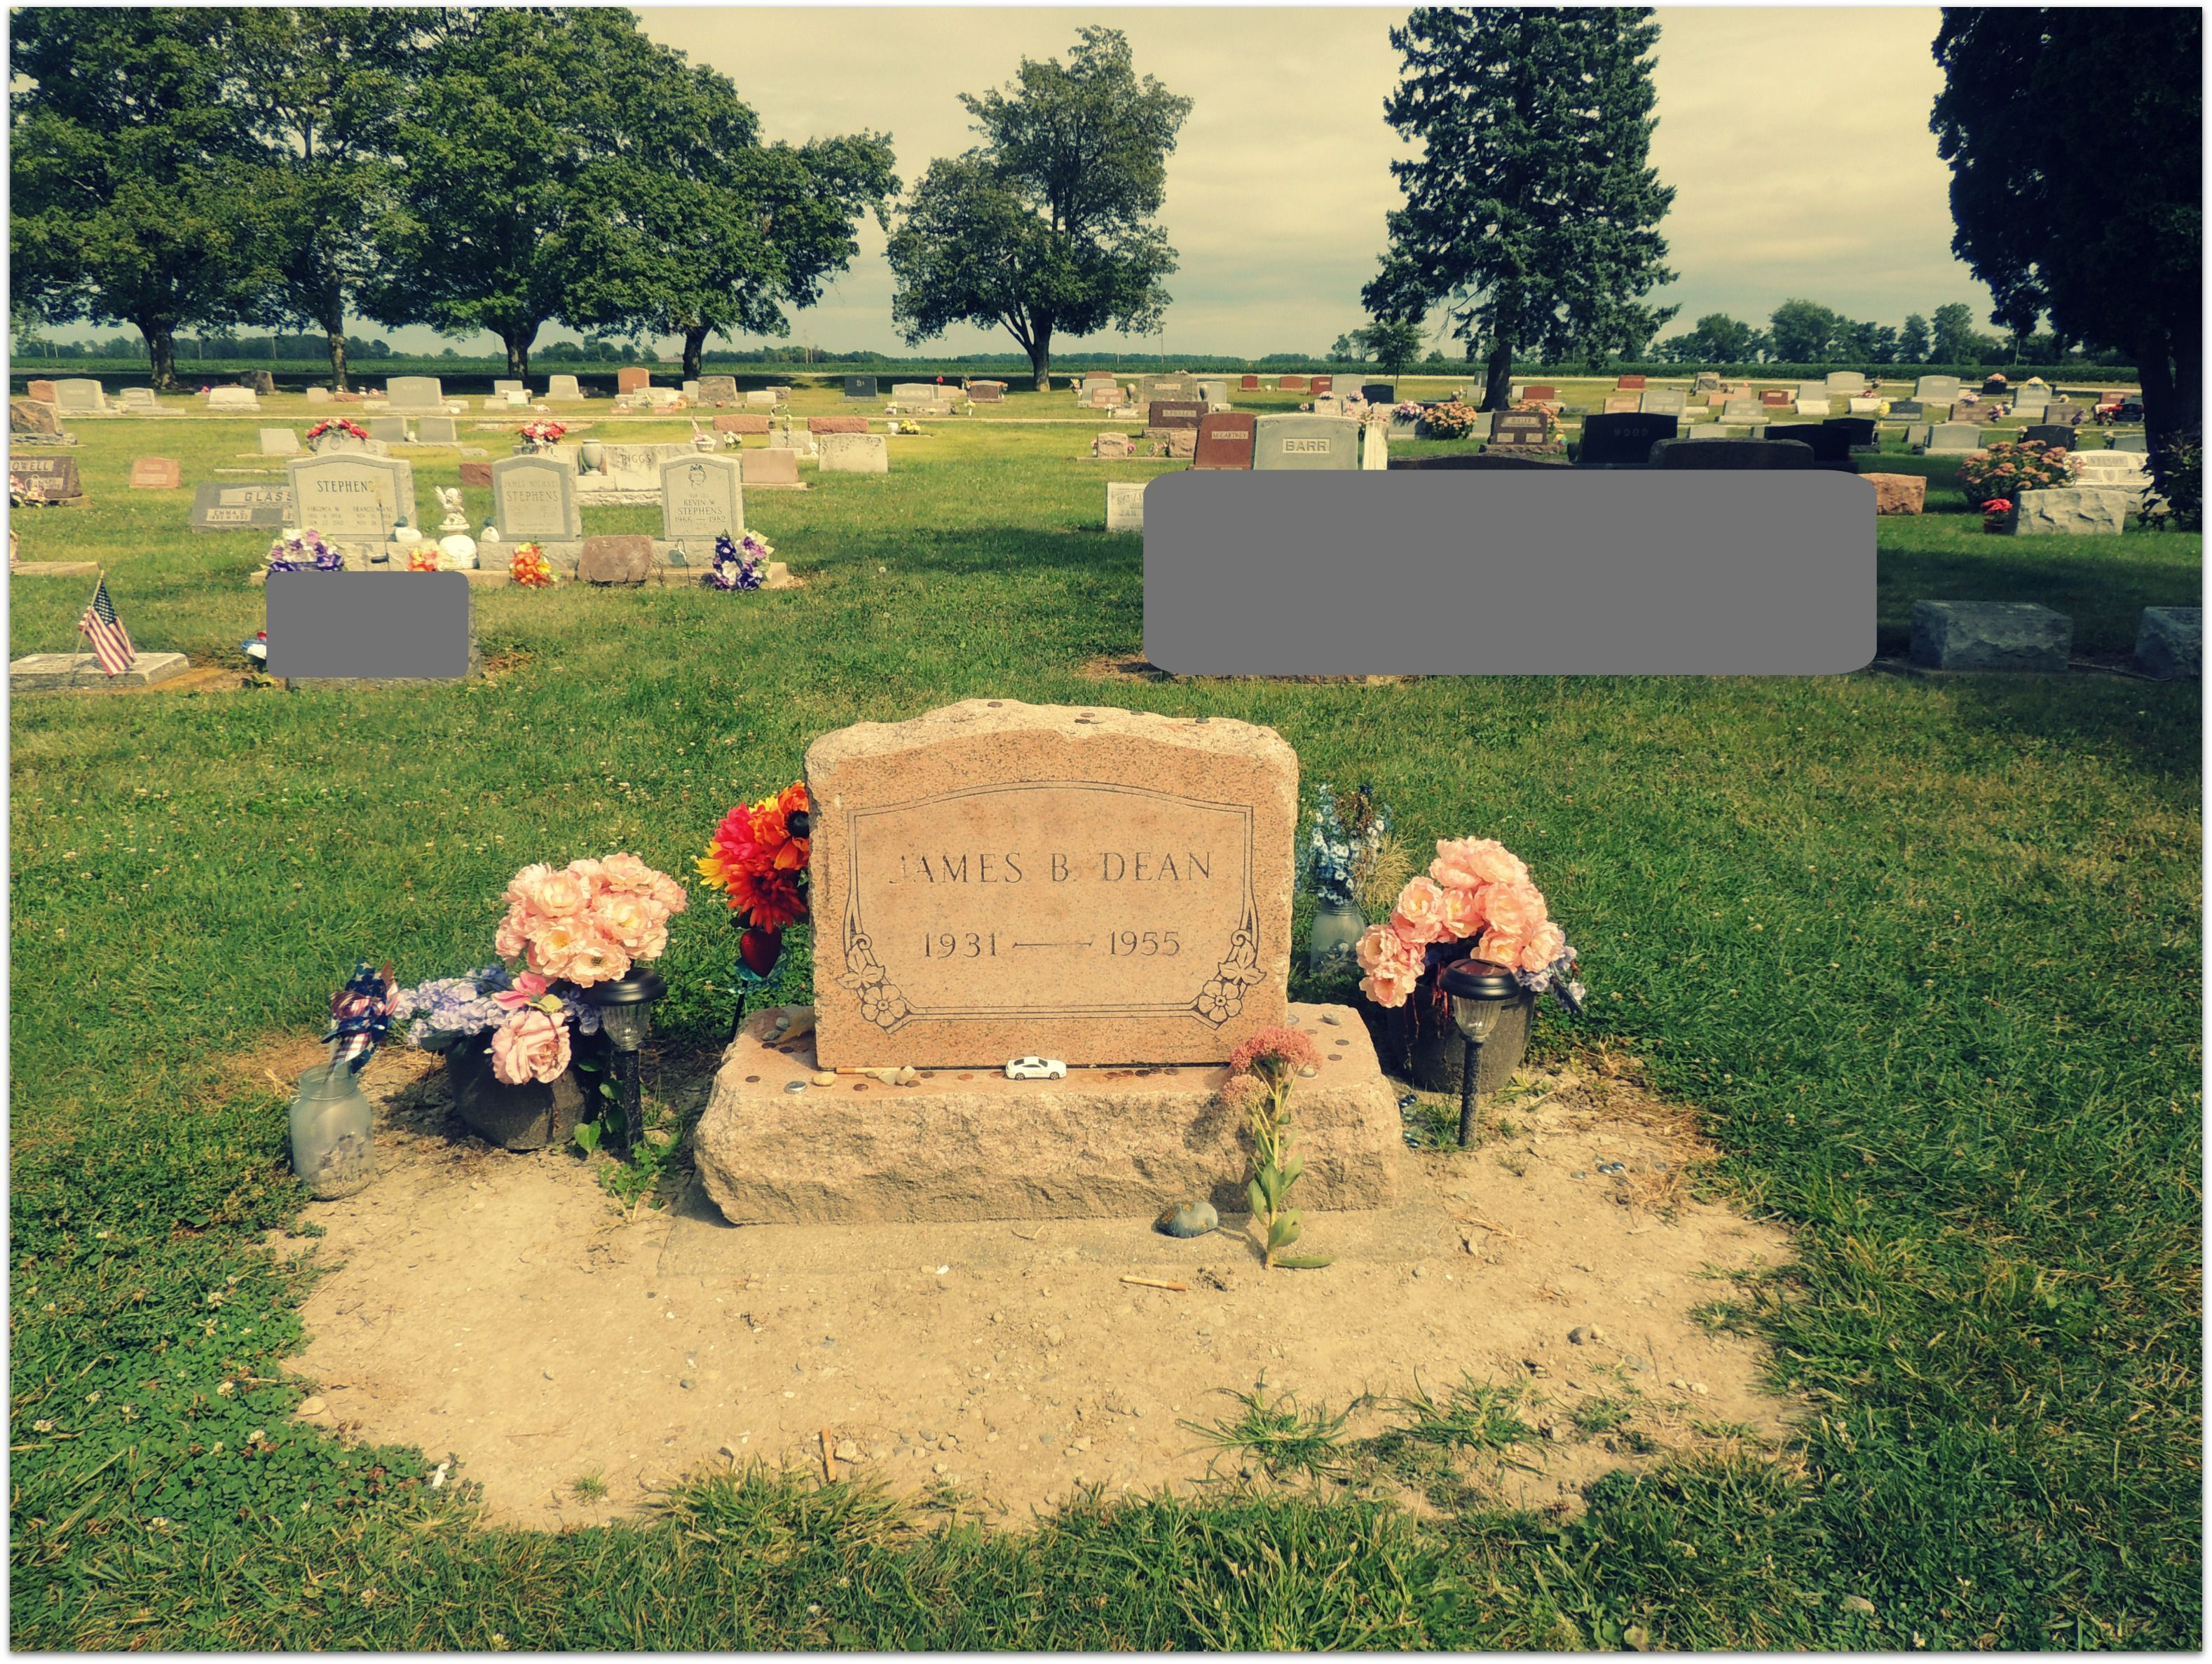 james dean grave fairmount indiana photo taken by me alisha teller